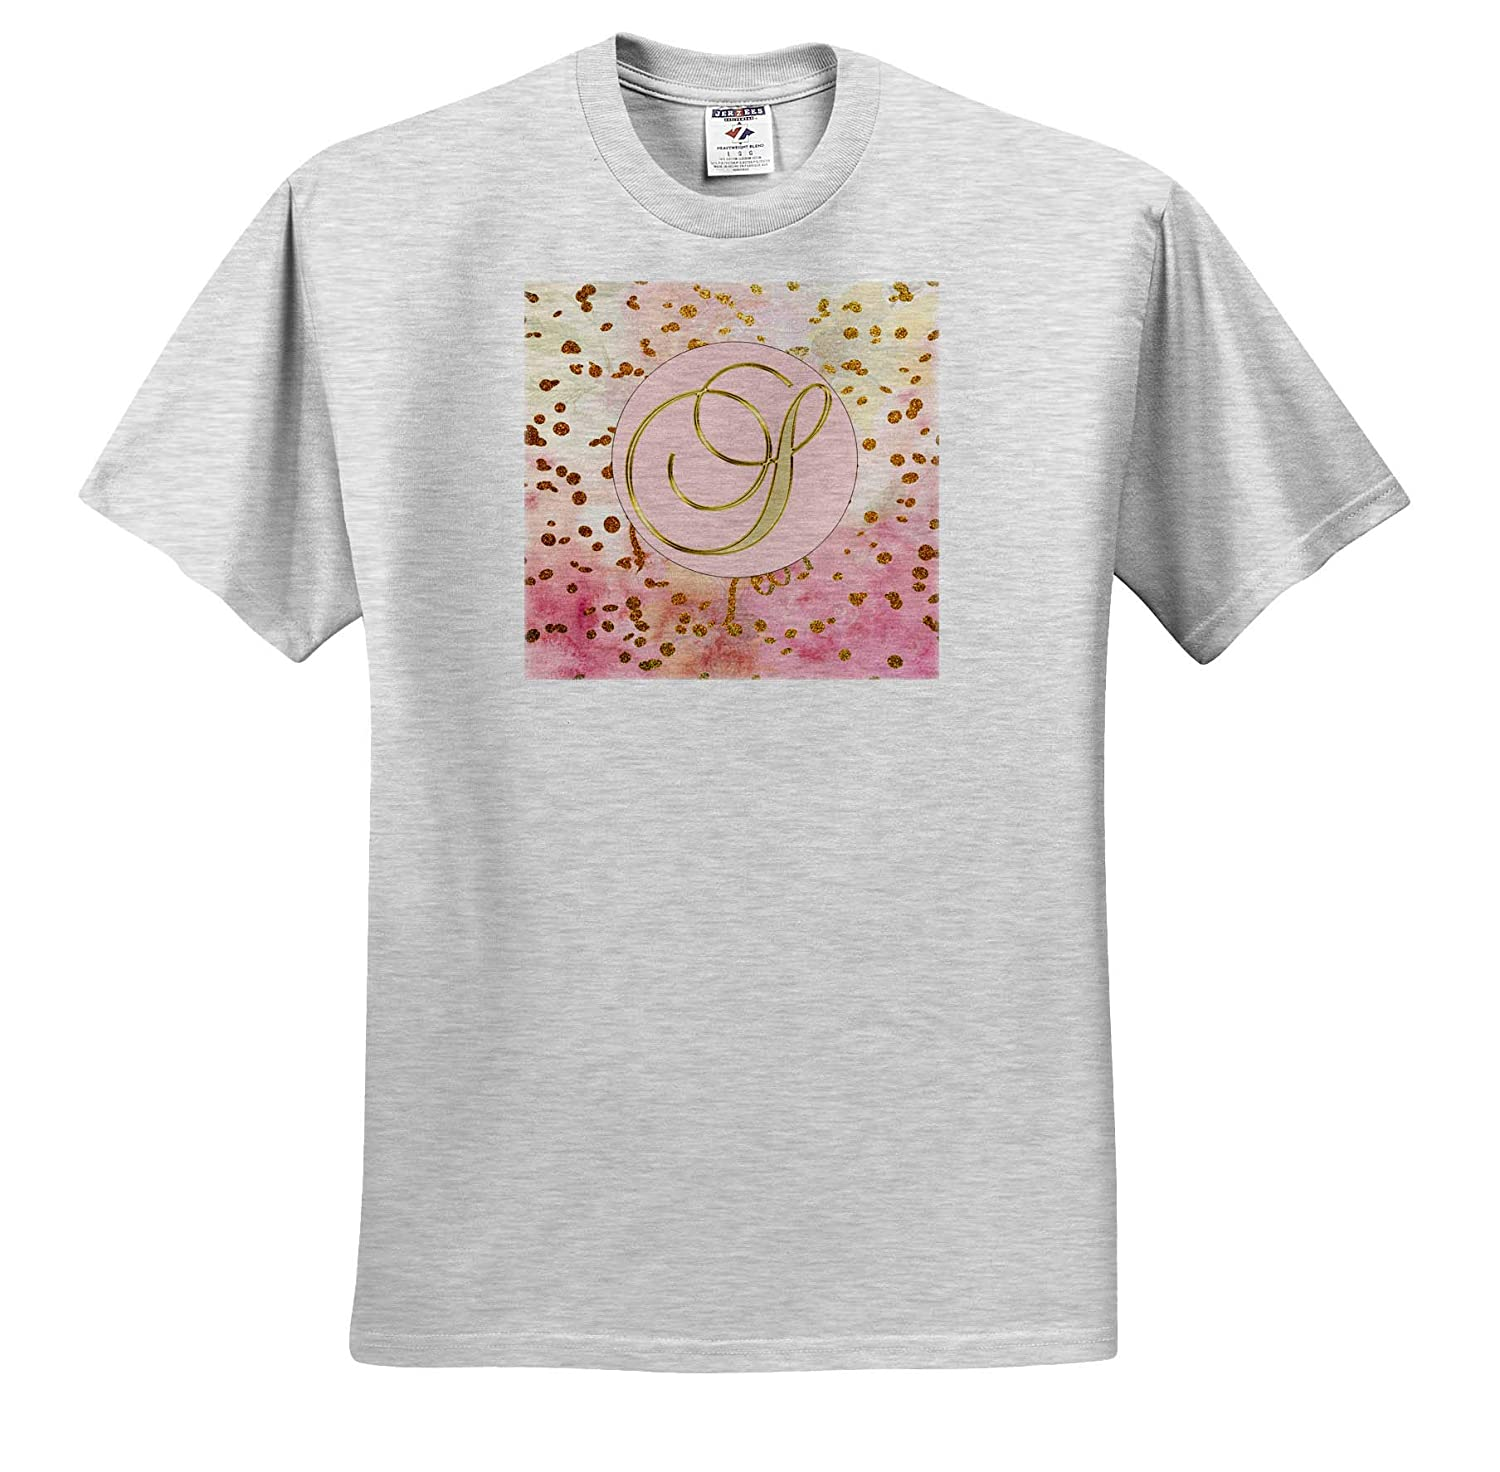 3dRose Lens Art by Florene Monograms Image of Gold Script S On Pink with Gold Glitter T-Shirts